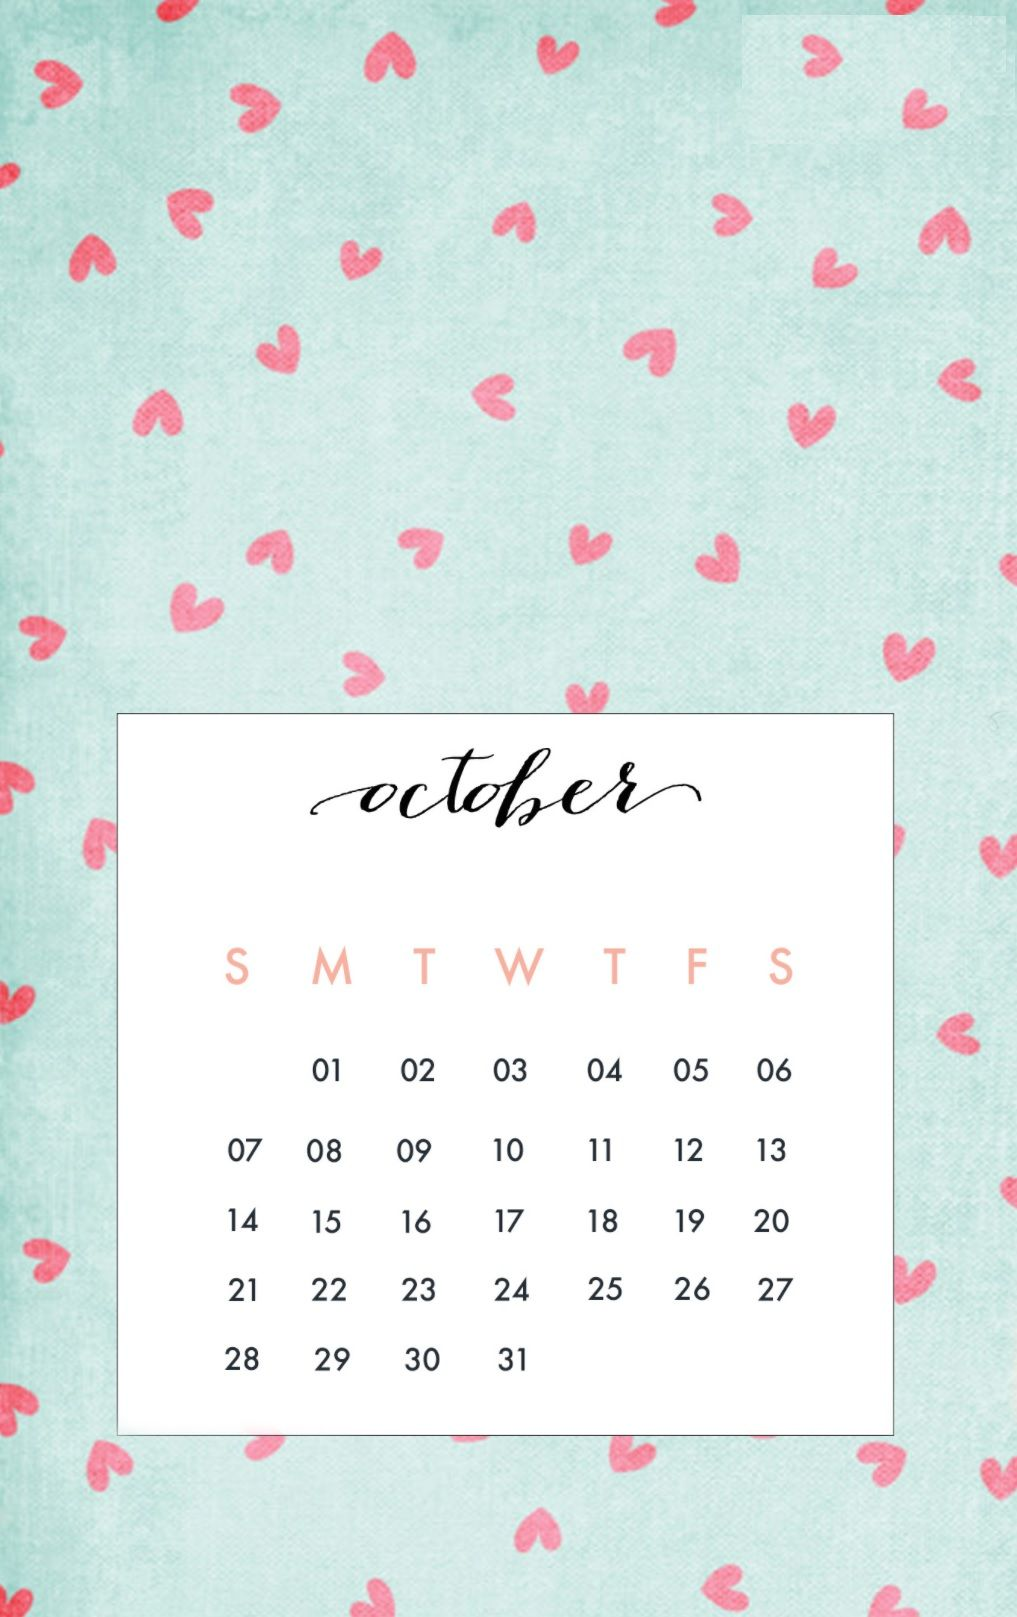 October 2018 Iphone Calendar Wallpapers Kalendar Dlya Pechati